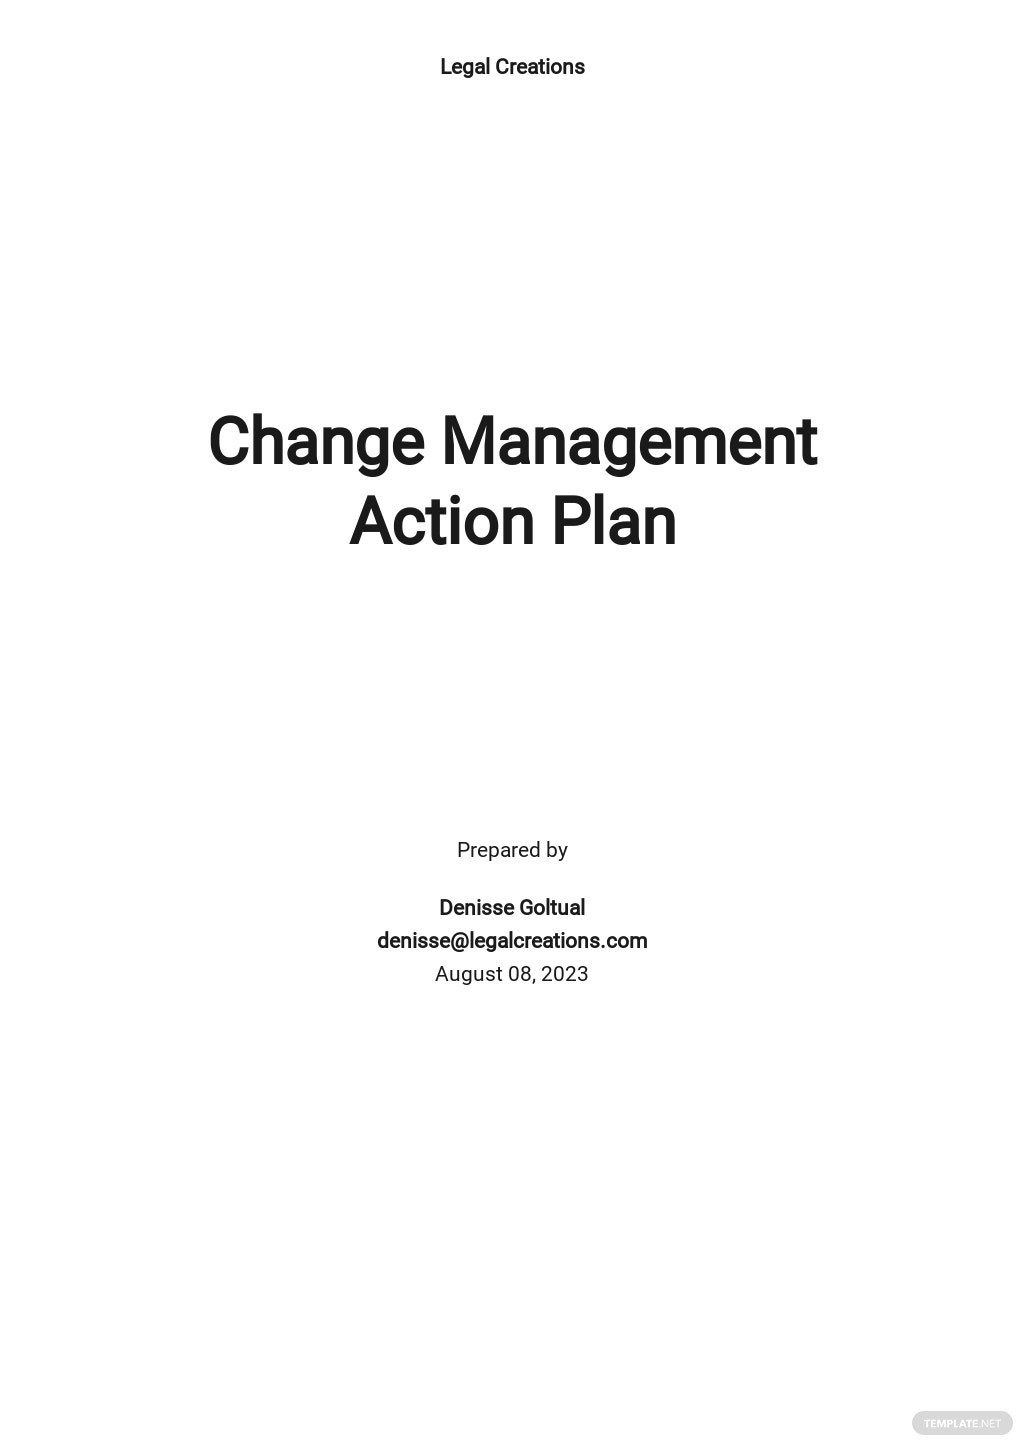 Change Management Action Plan Template